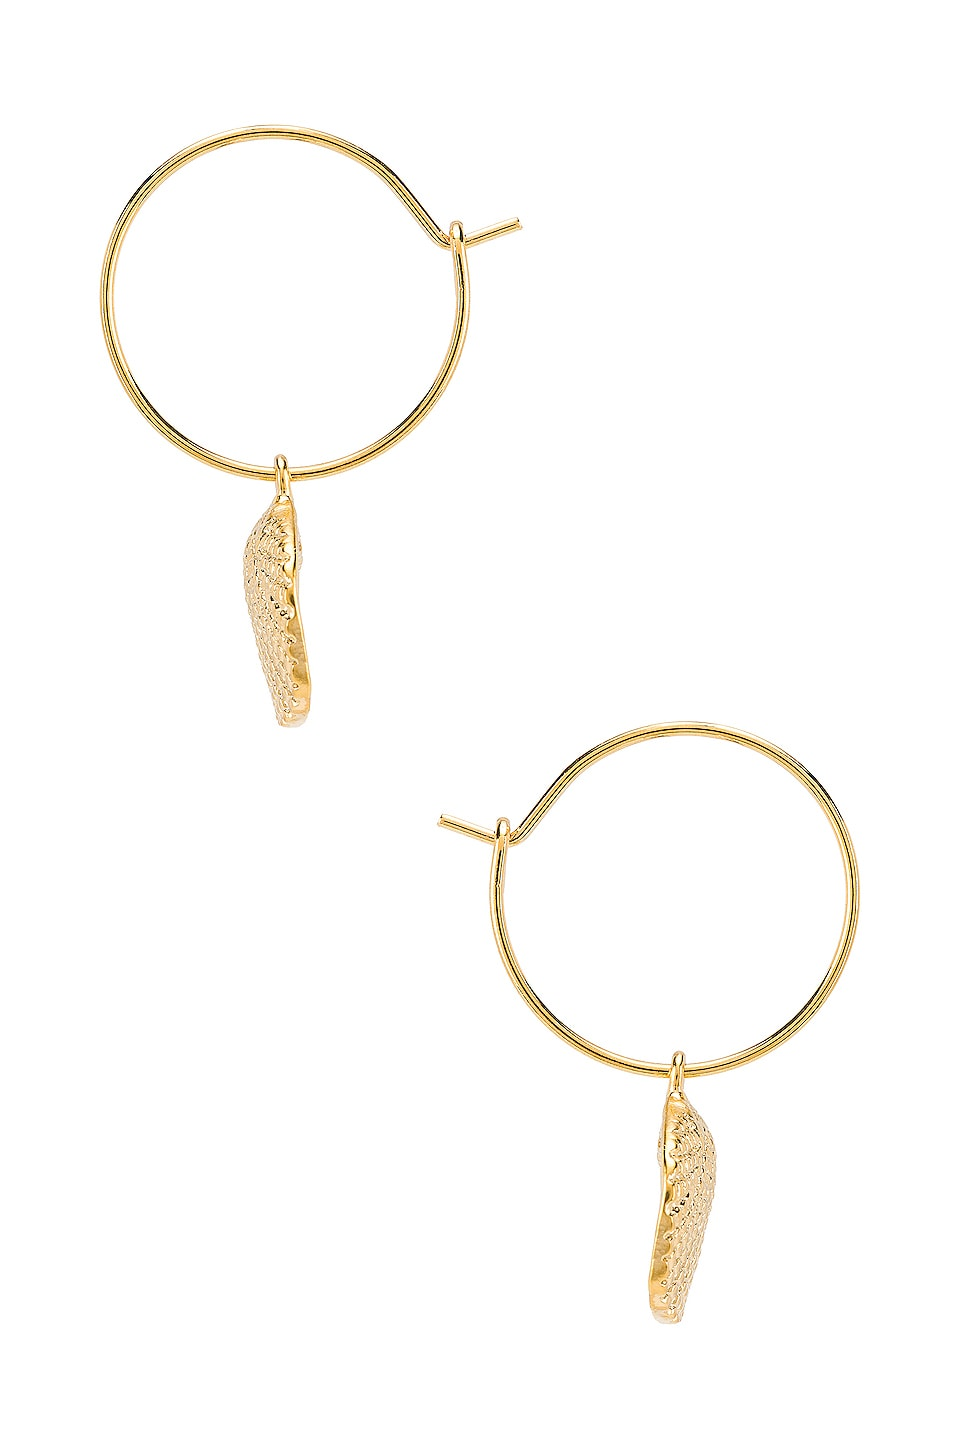 Five and Two Lana Earrings in Gold